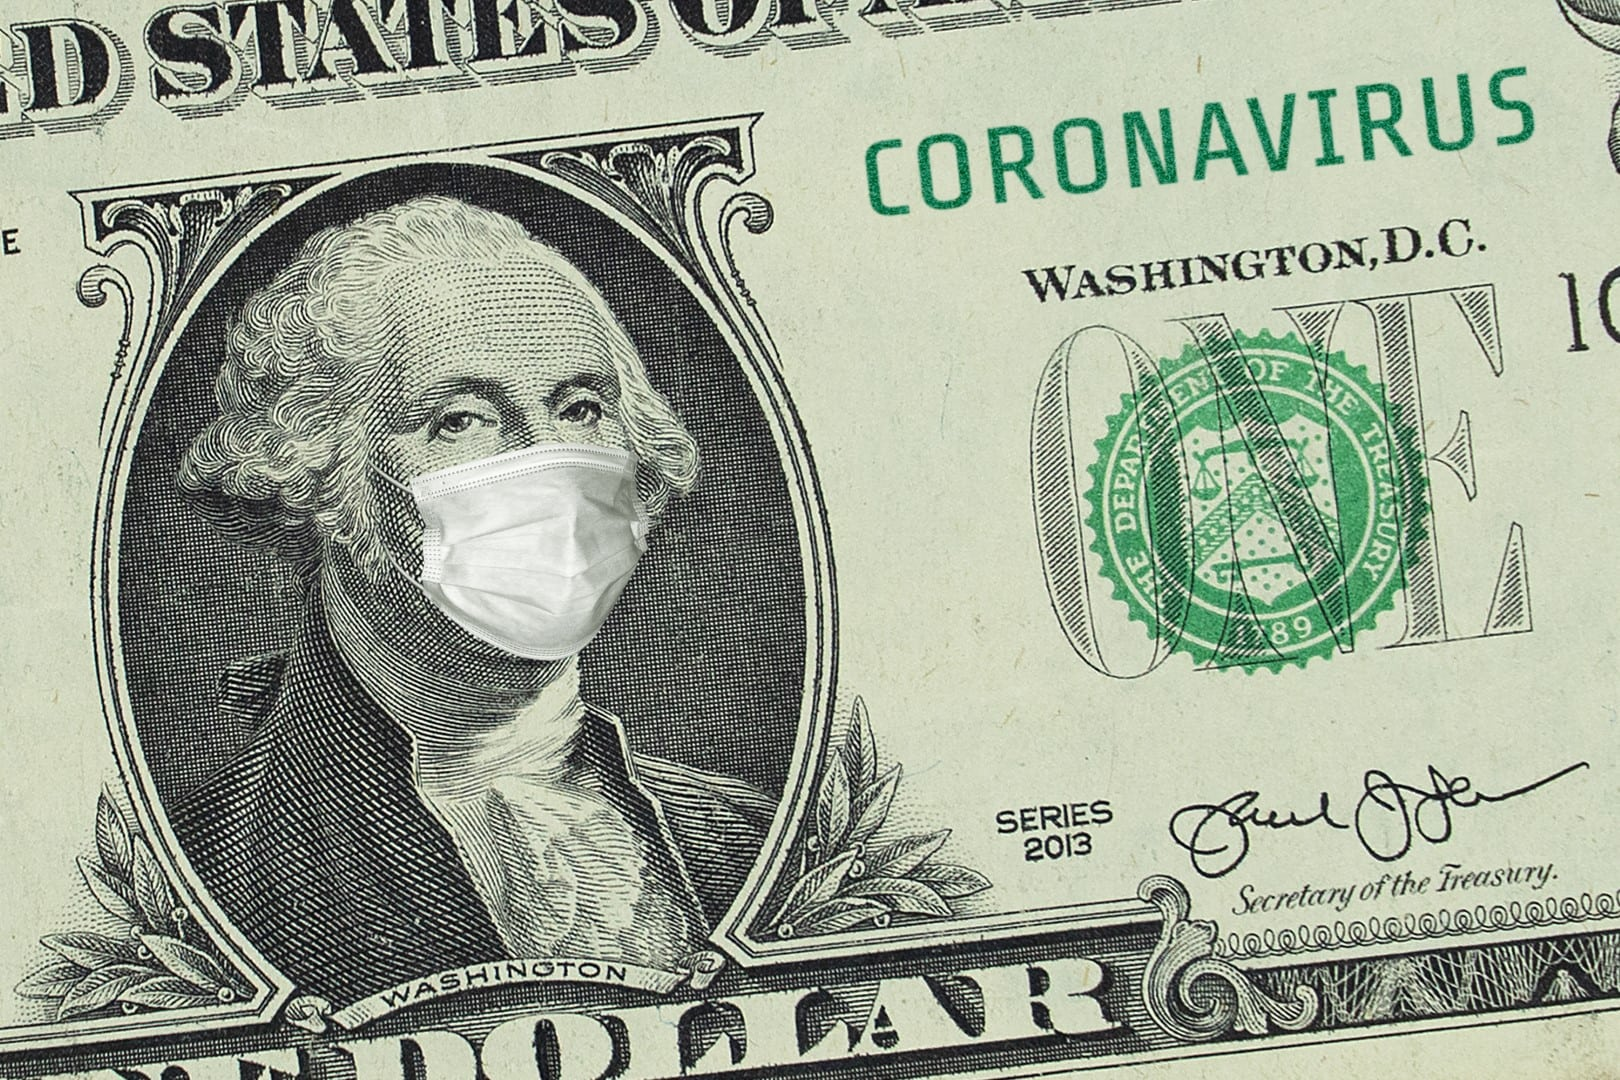 US President Washington in a medical mask.